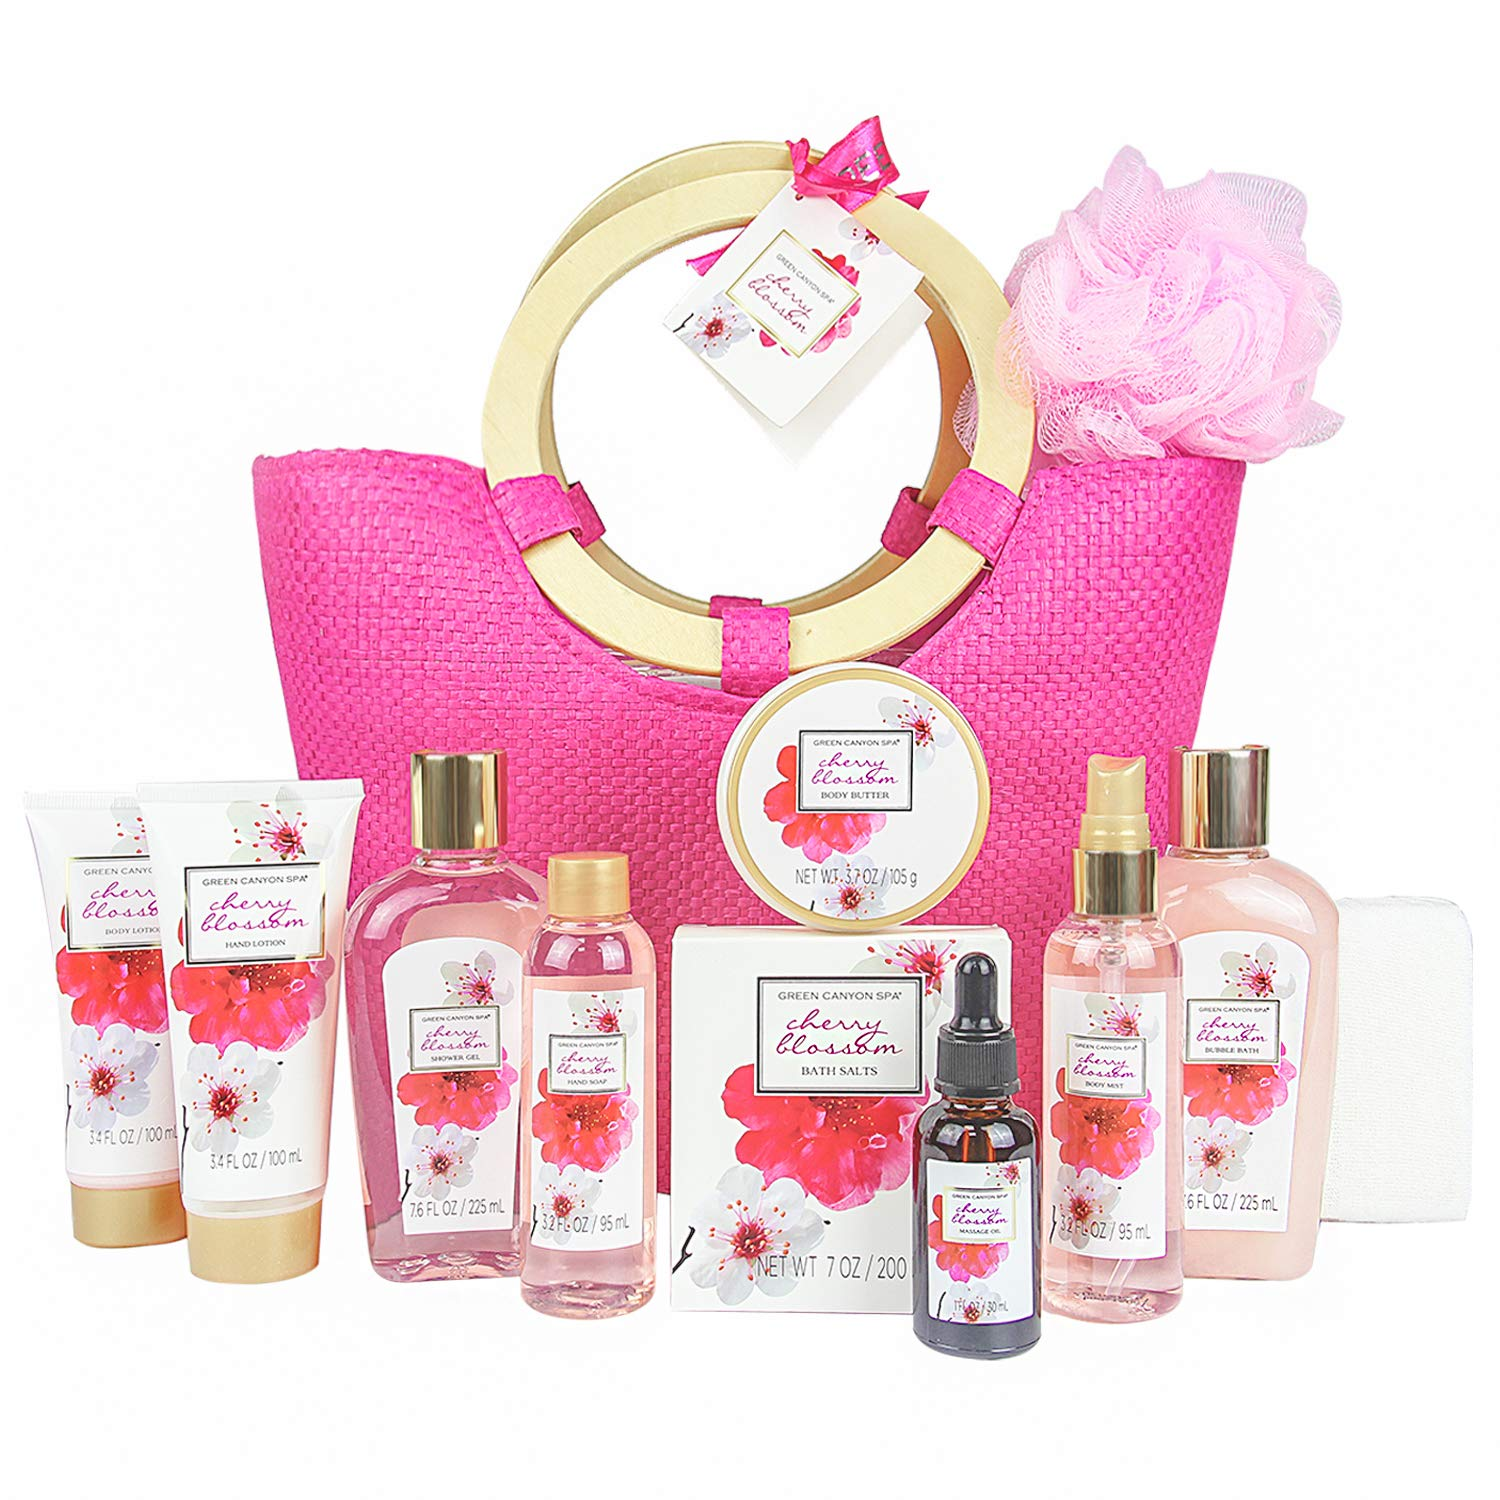 Green Canyon Spa Bath Gift Set for Her in Pink Tote Bag Upgraded 12 Pcs Spa Gift Sets Cherry Blossom Collective Birthday Gift for Women